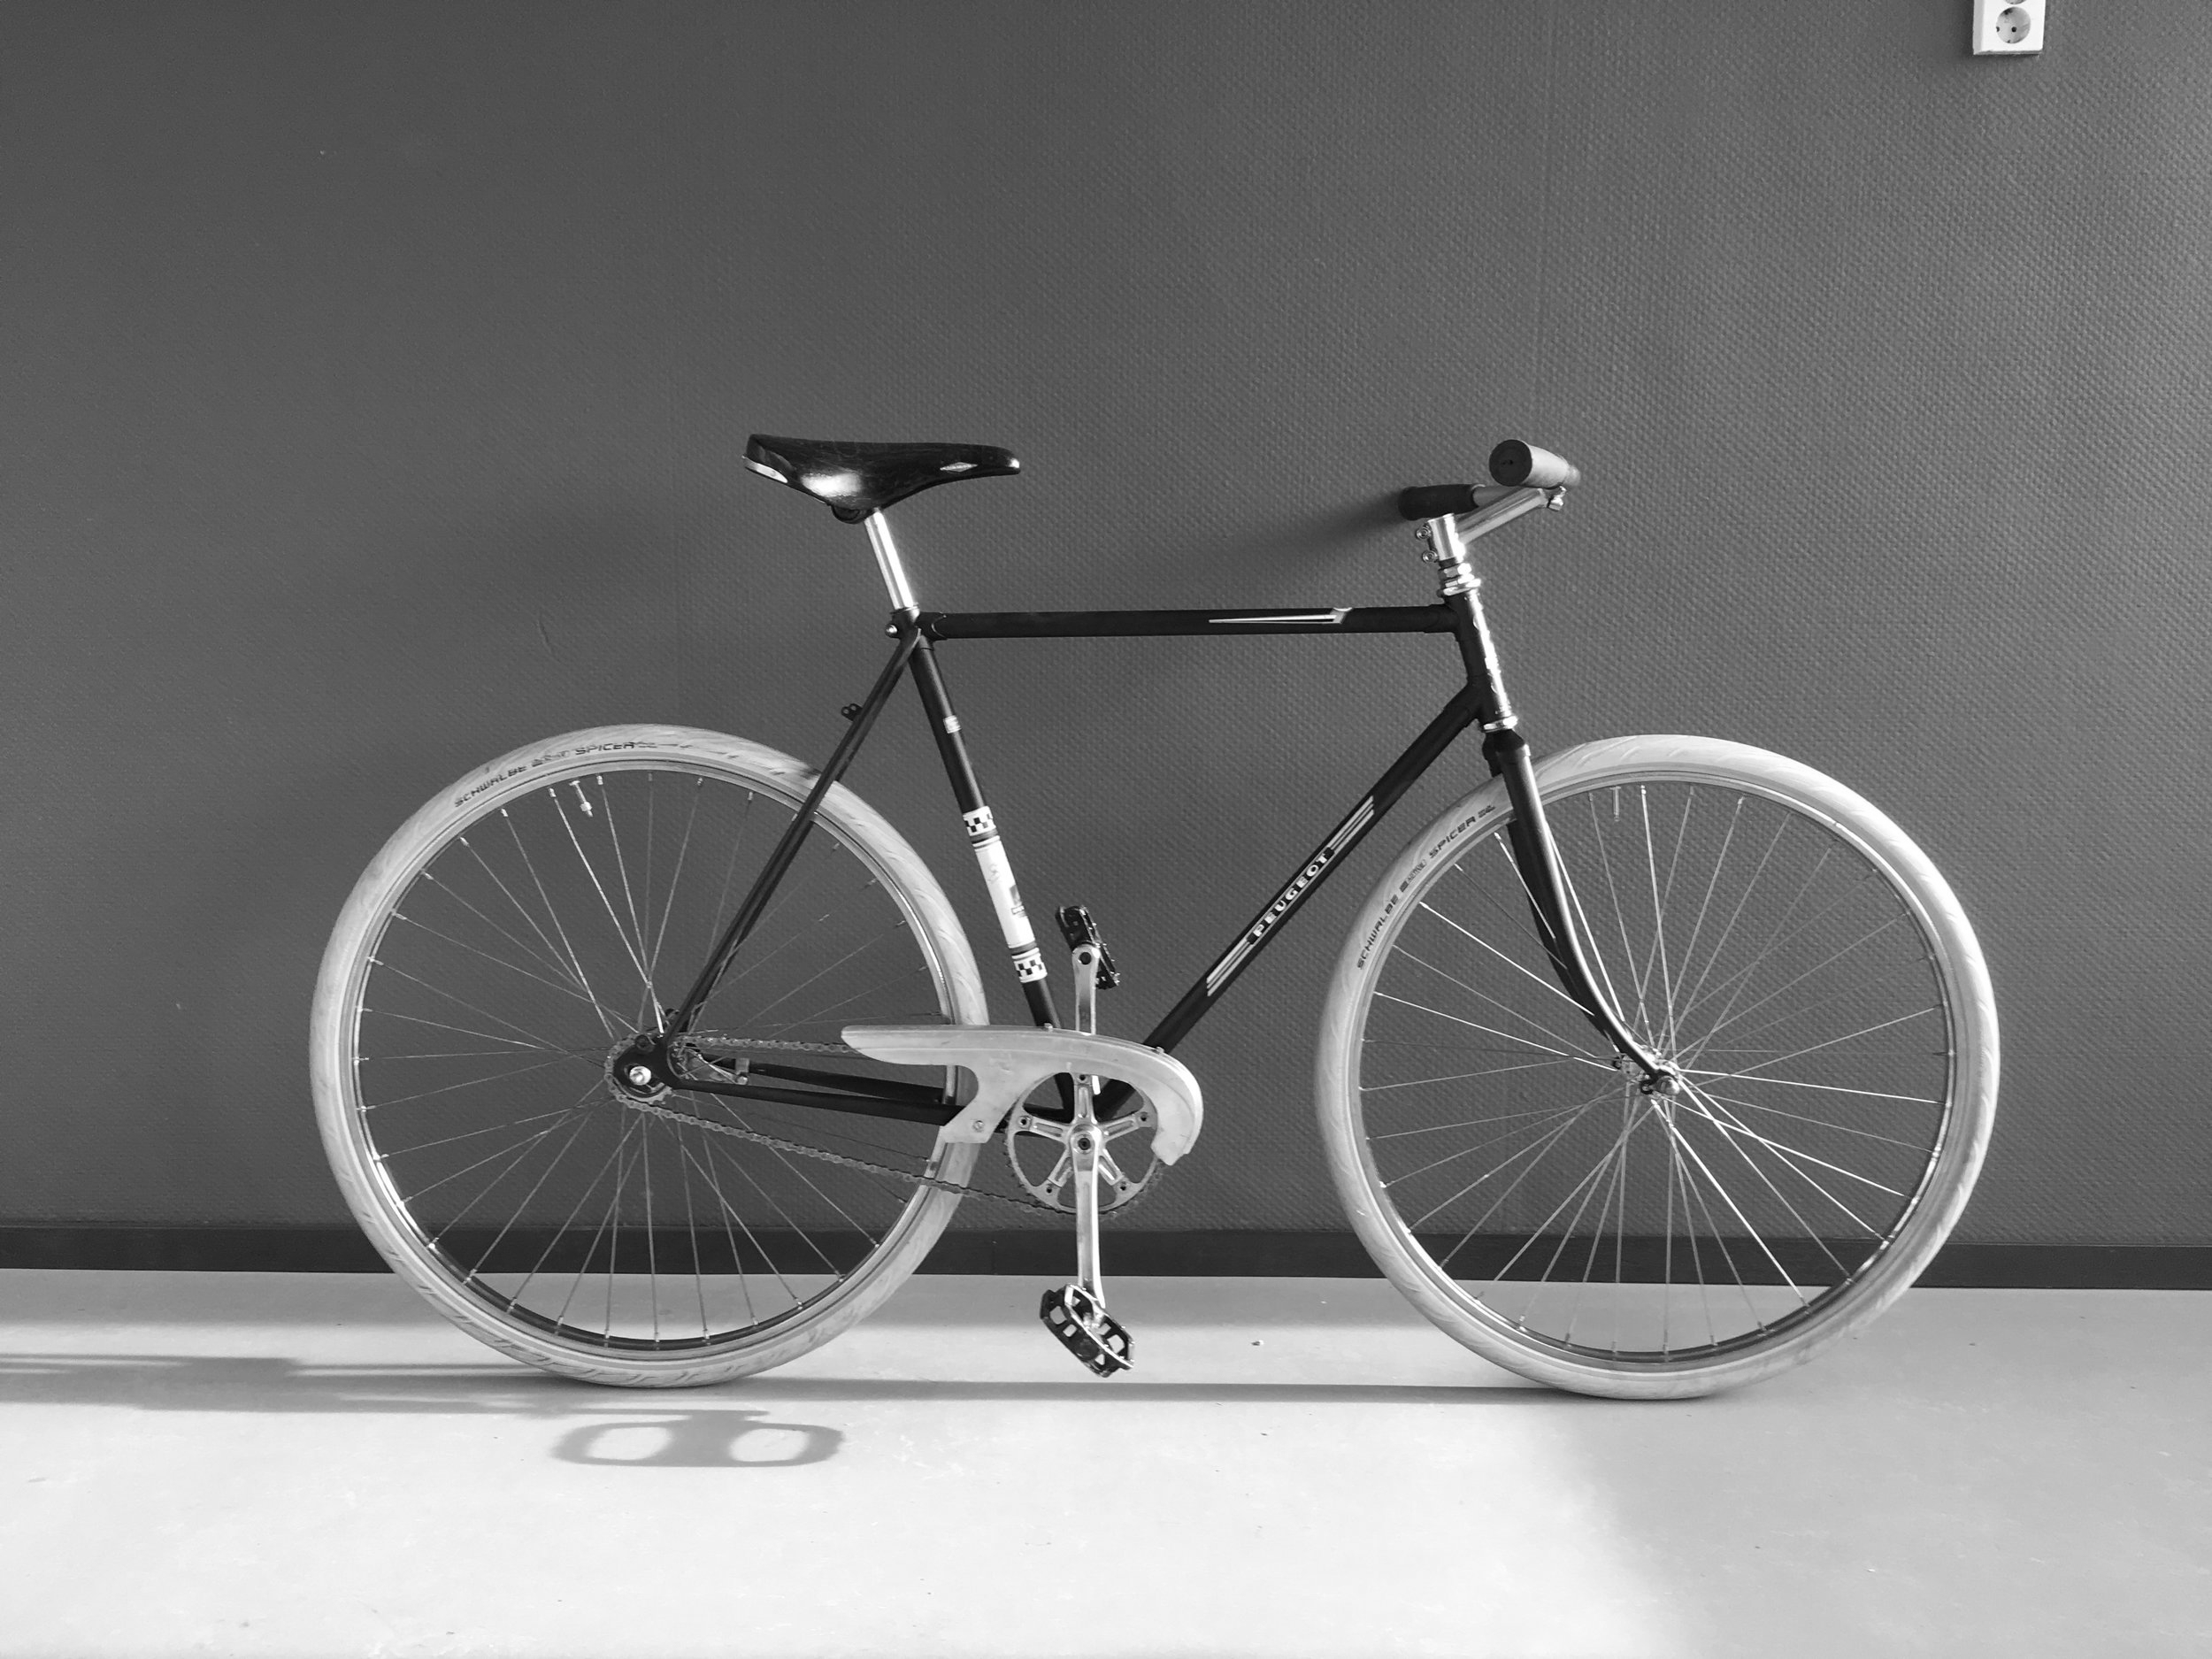 peugeot racer - size 57[Riders > 175cm]Single speedCoaster brakeRolls saddlesold